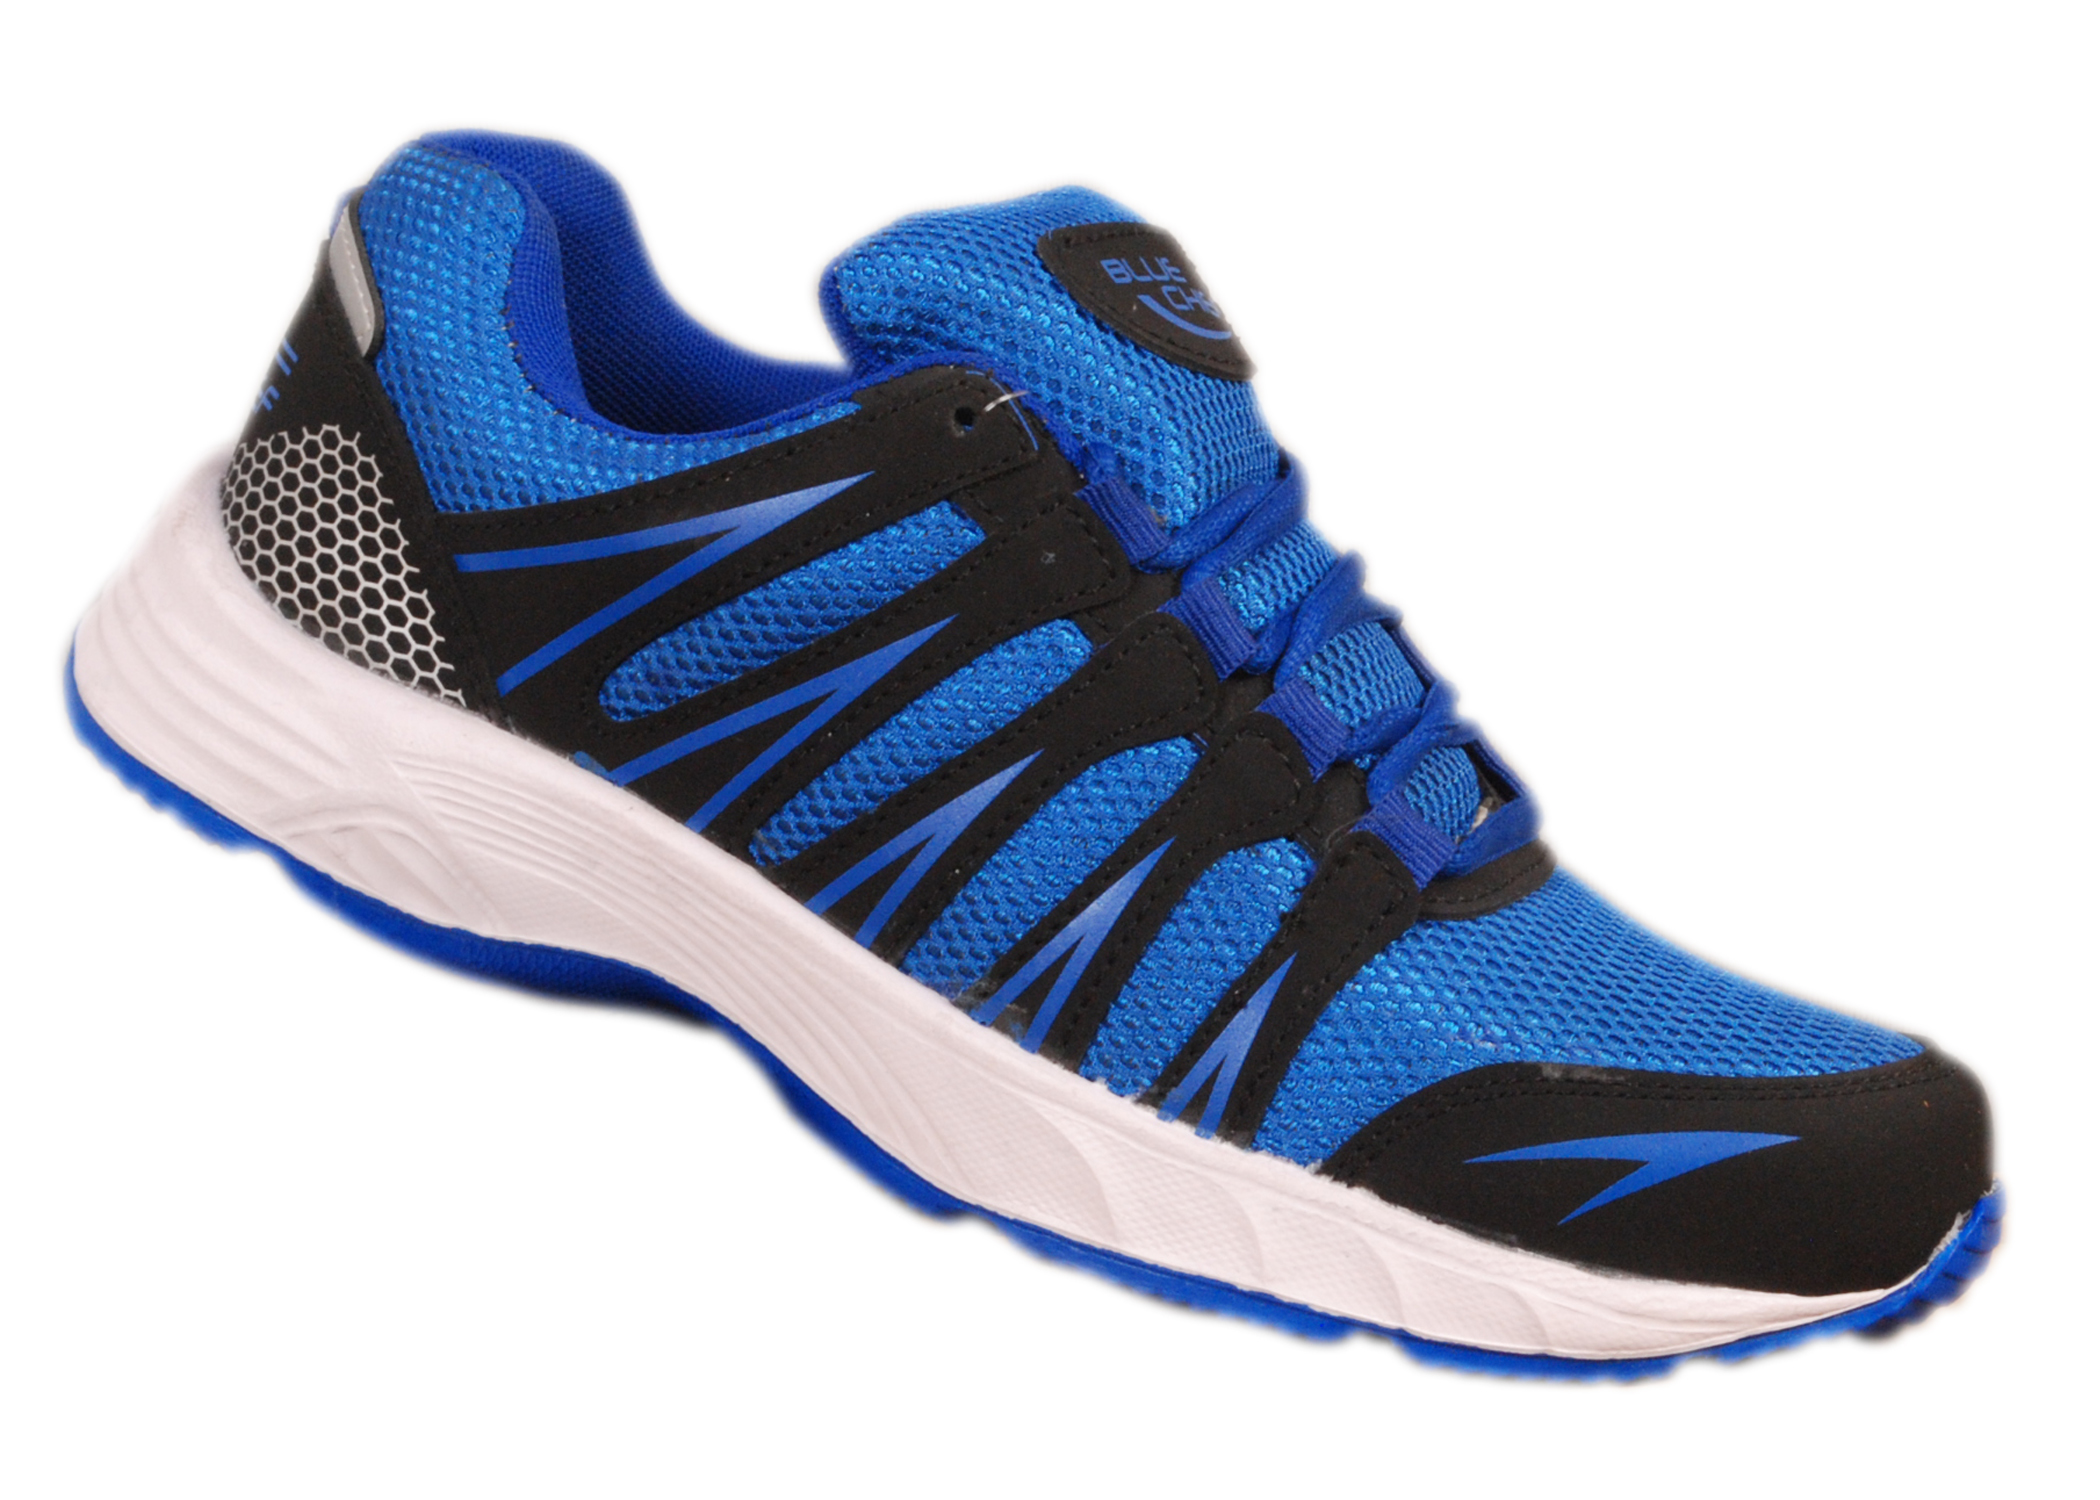 creativefashion8 Blue Chief Men's Running Shoes Mark Royal Blue